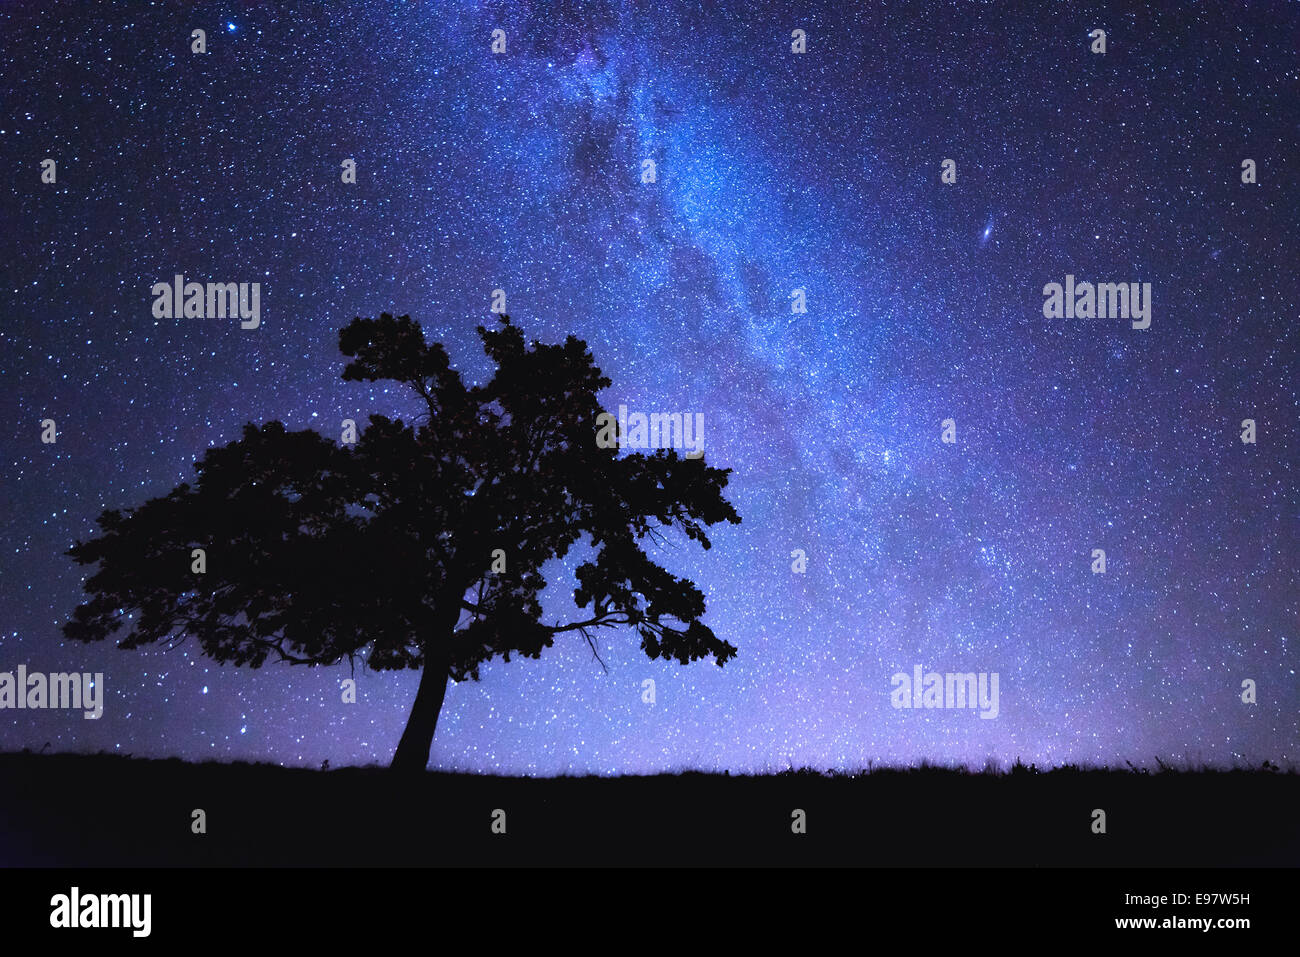 alone tree and milky way - Stock Image